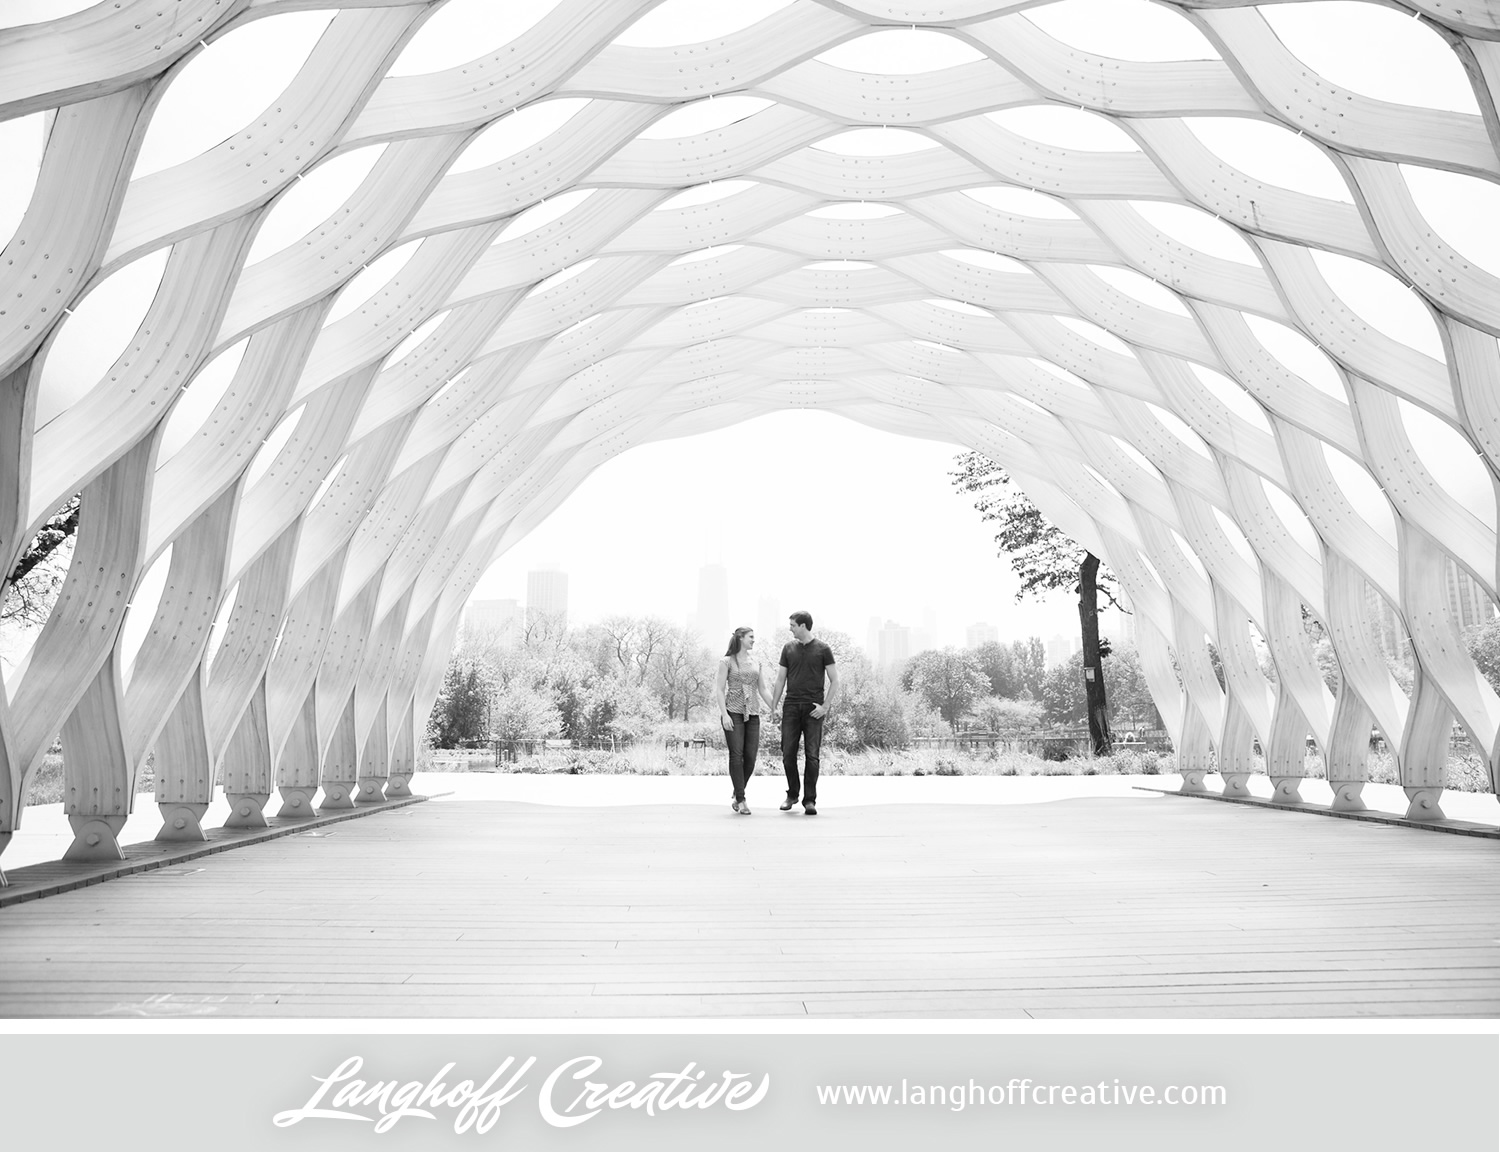 ChicagoEngagement-LincolnParkZoo-Engaged-LanghoffCreative-DestinationWeddingPhotographers-2014-ZacRachel-10-photo.jpg